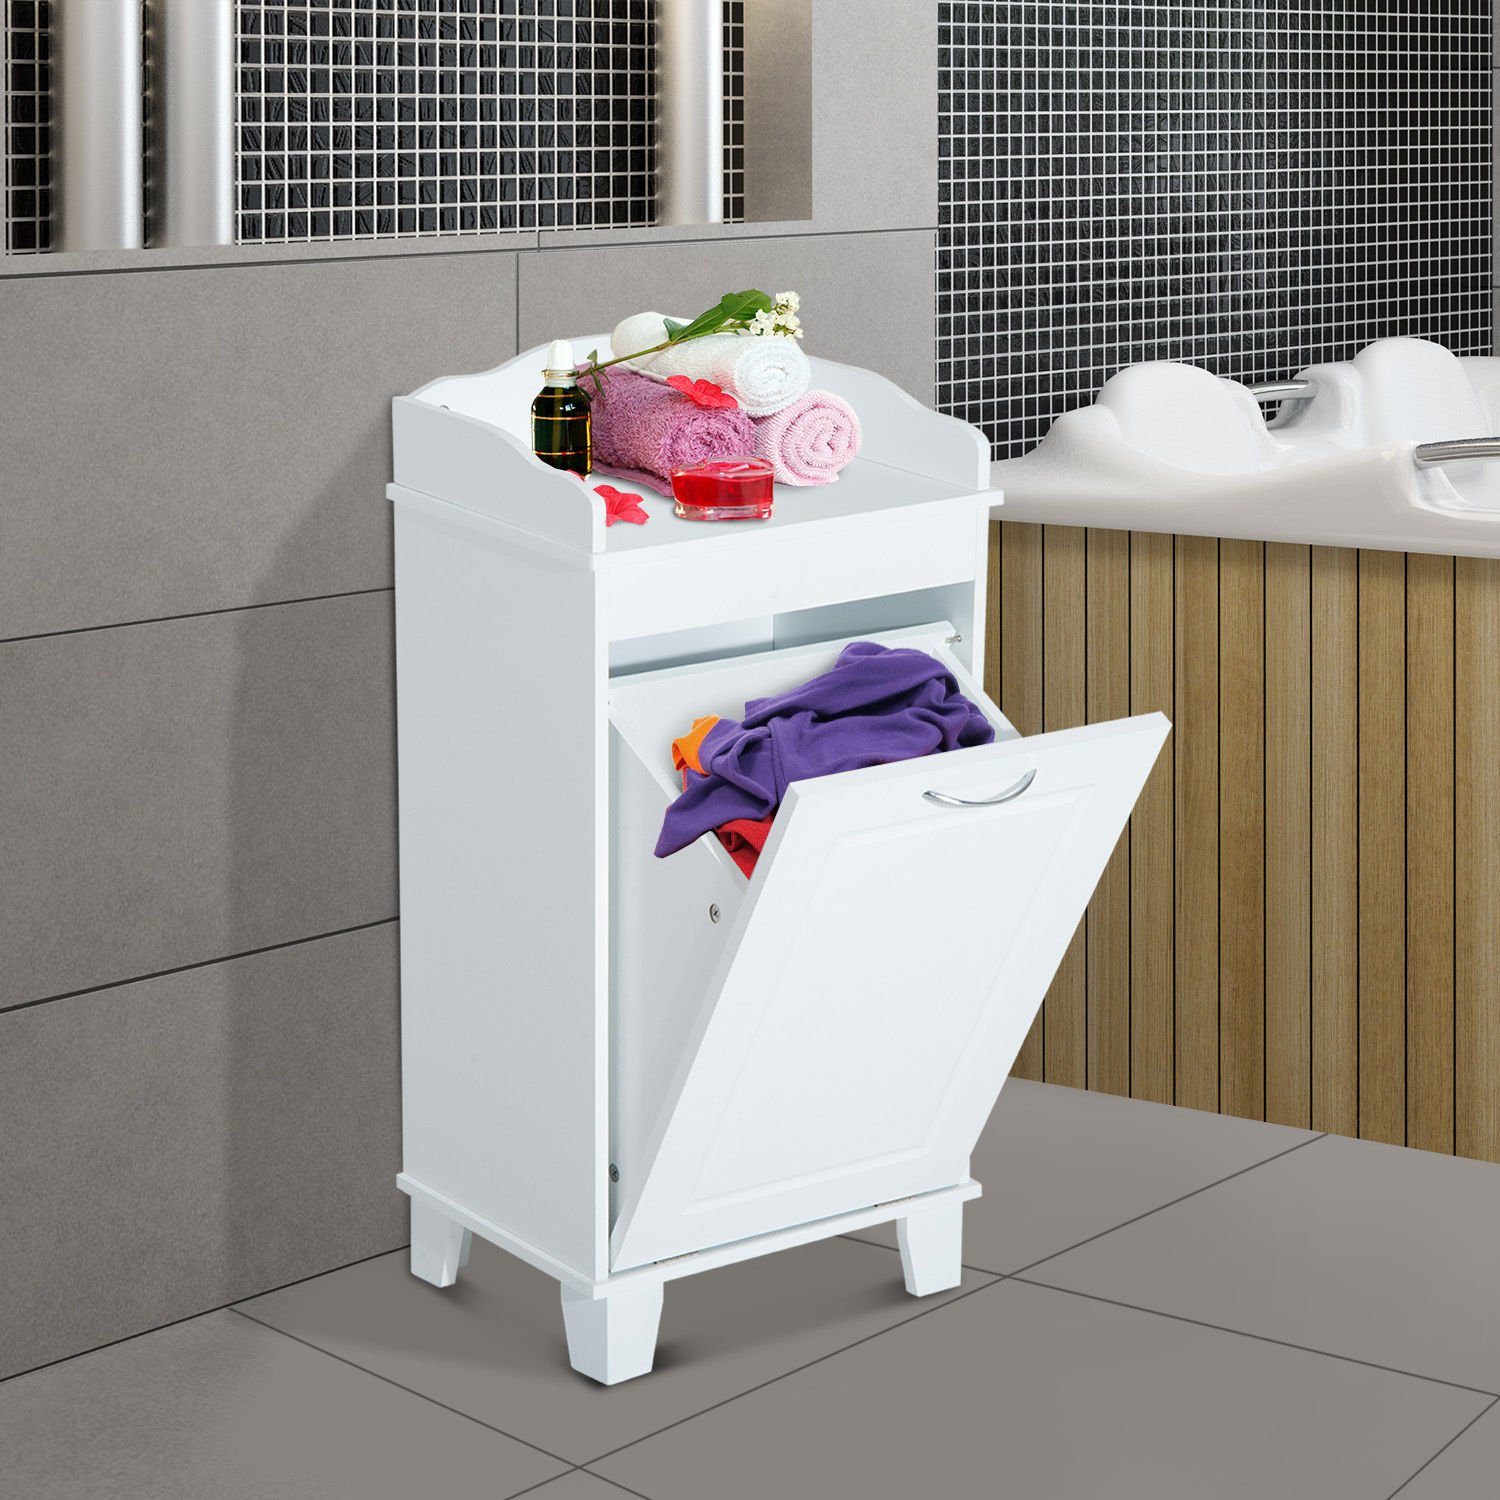 New White Bathroom Hamper Wood Laundry Tilt Out Basket Storage Bench Furniture Cabinet by totoshop (Image #2)